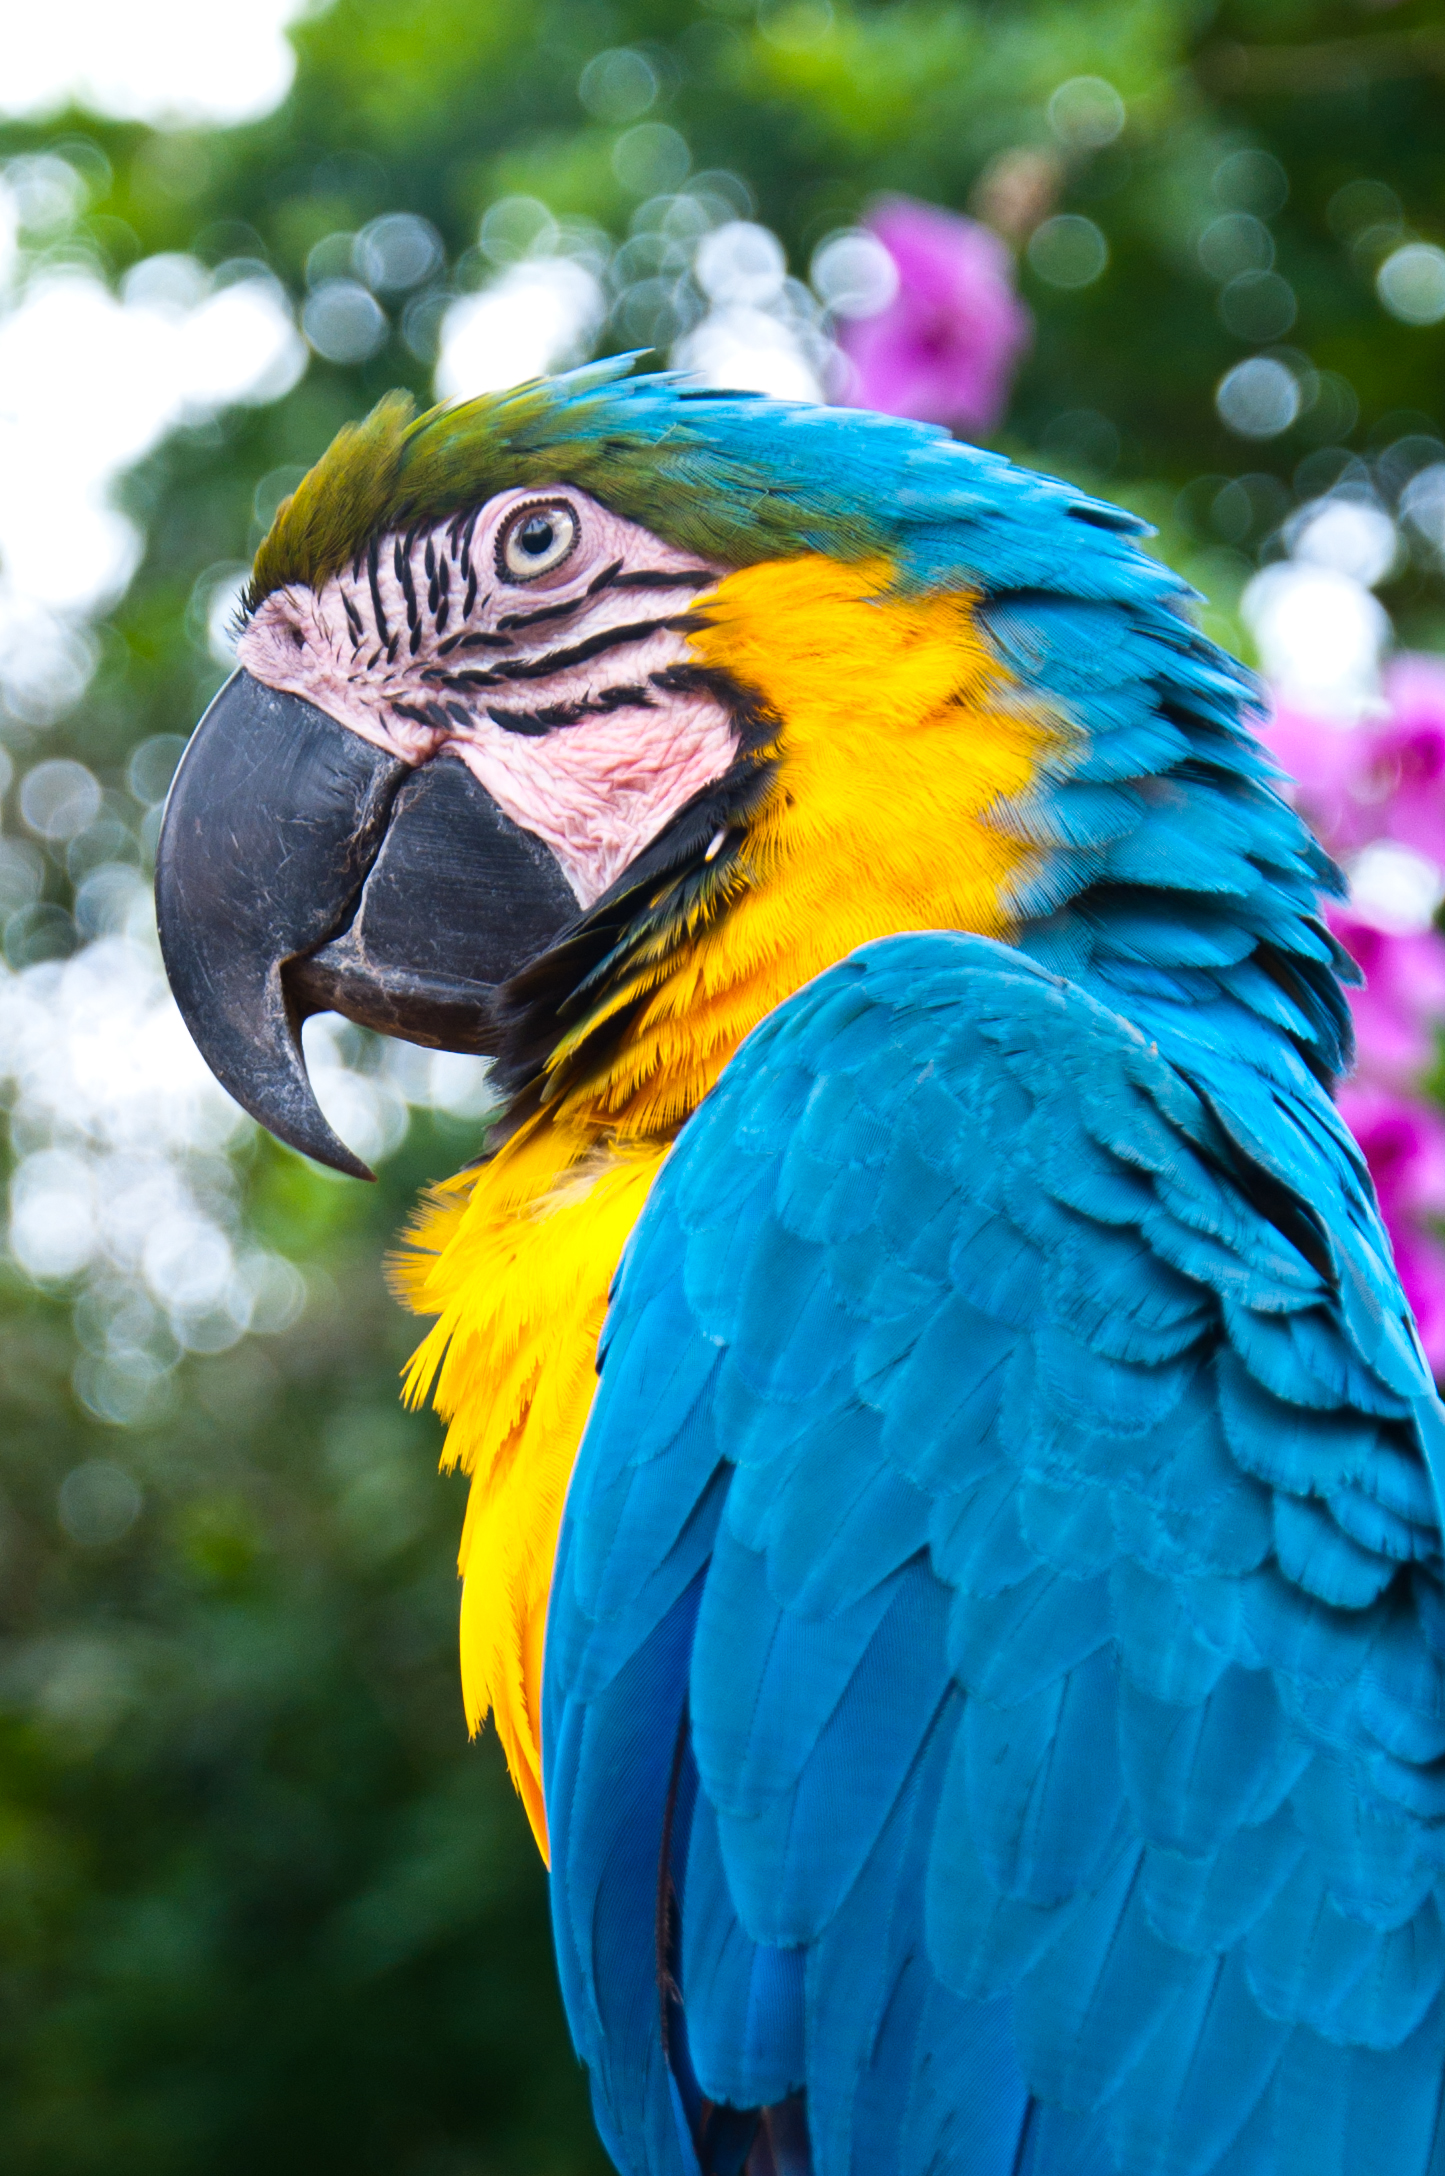 Blue and gold macaw bird photo